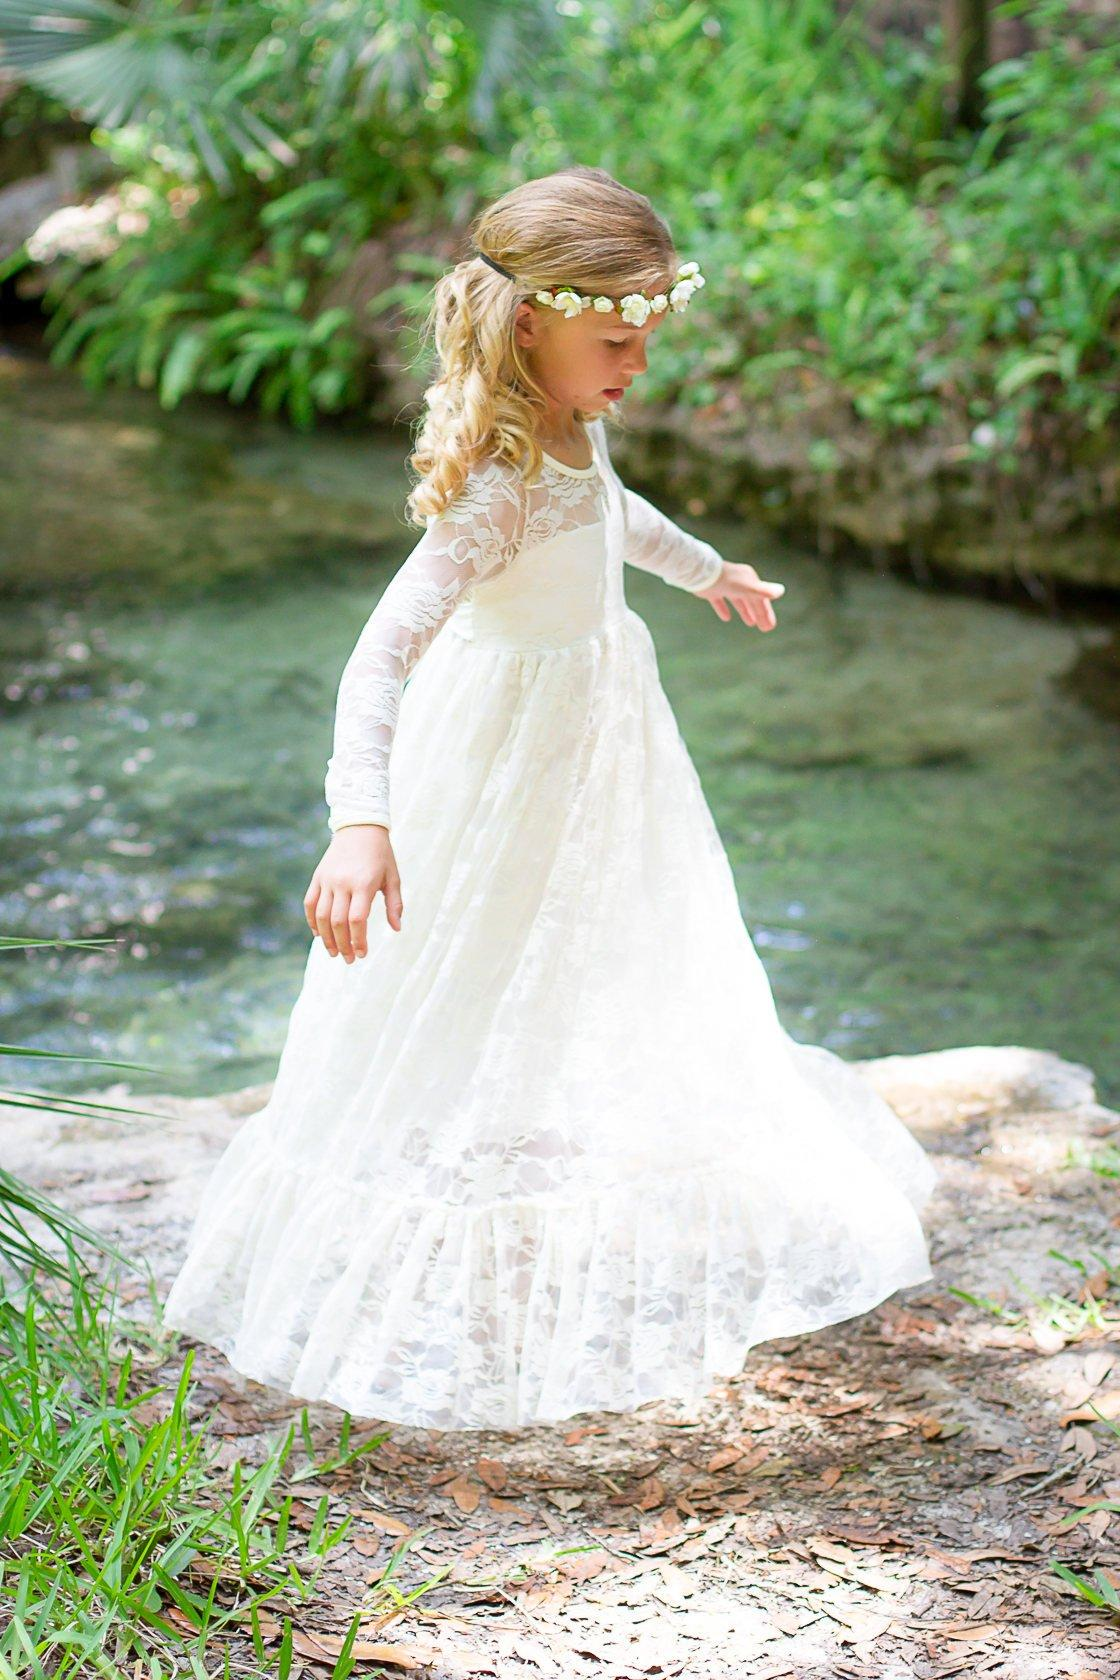 69b501d10a6a Flower Girl Dress Lace Long Sleeve Little Girl Baby Flower Girl Cute White  Ivory Girls Cream Rustic Wedding Dress Formal Occasion Dress White Flower  Girl ...